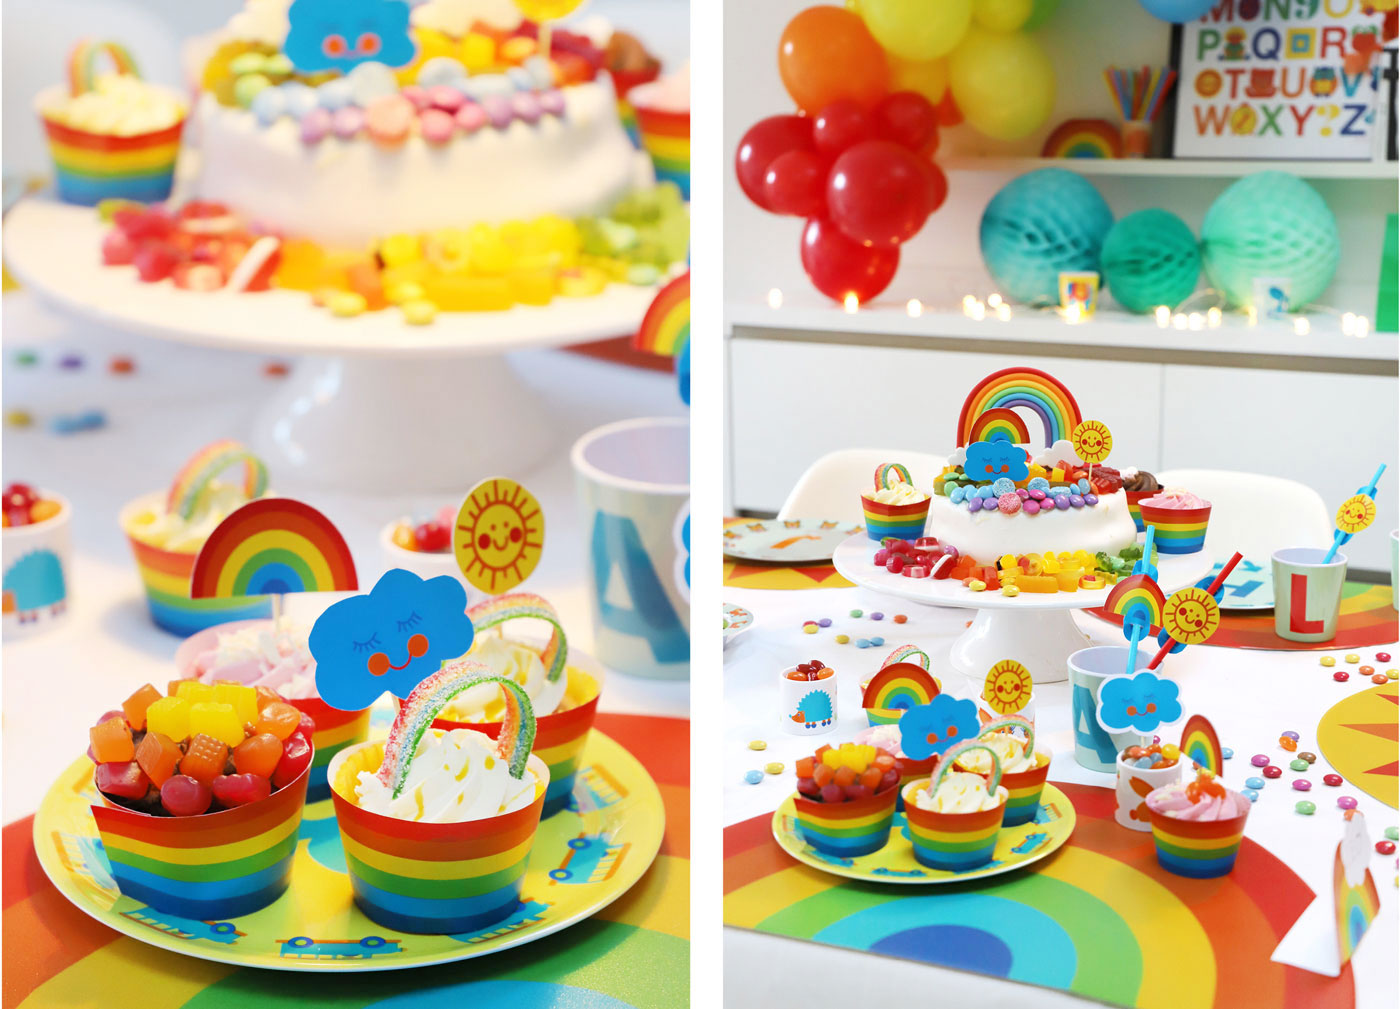 regenbogen-party-1